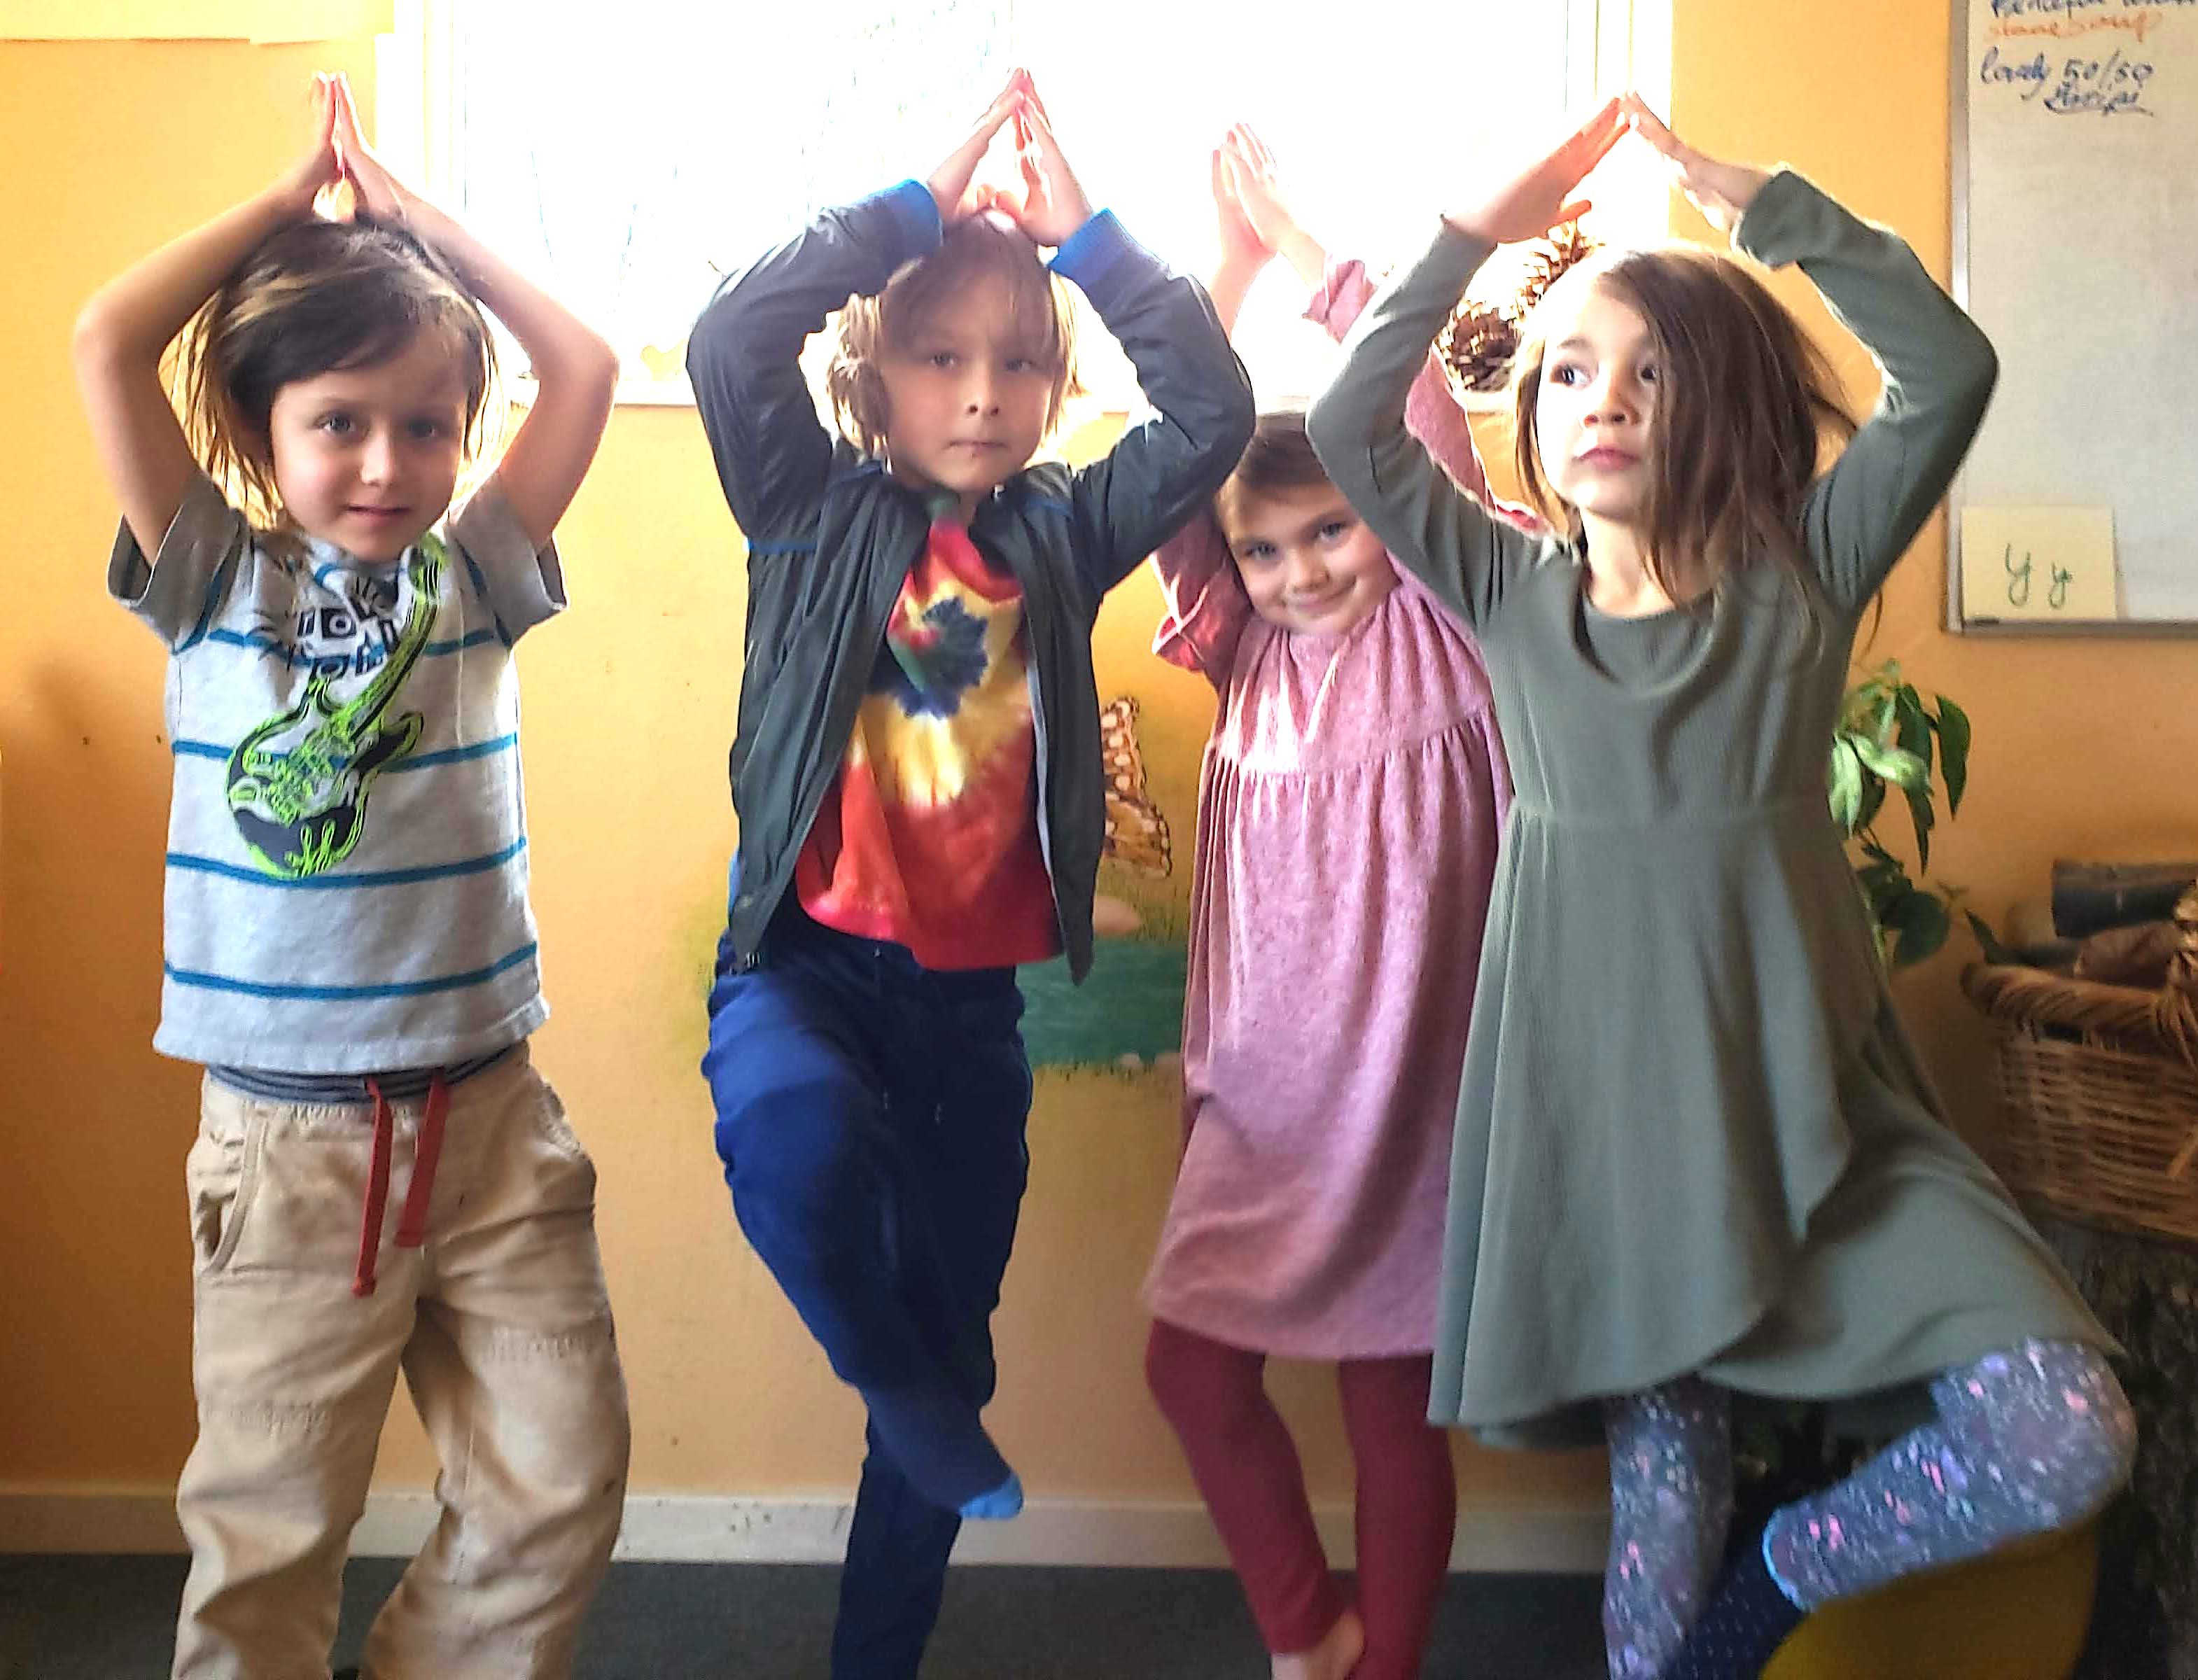 Kindergarten students practicing yoga tree pose in their classroom in Beaverton, Oregon